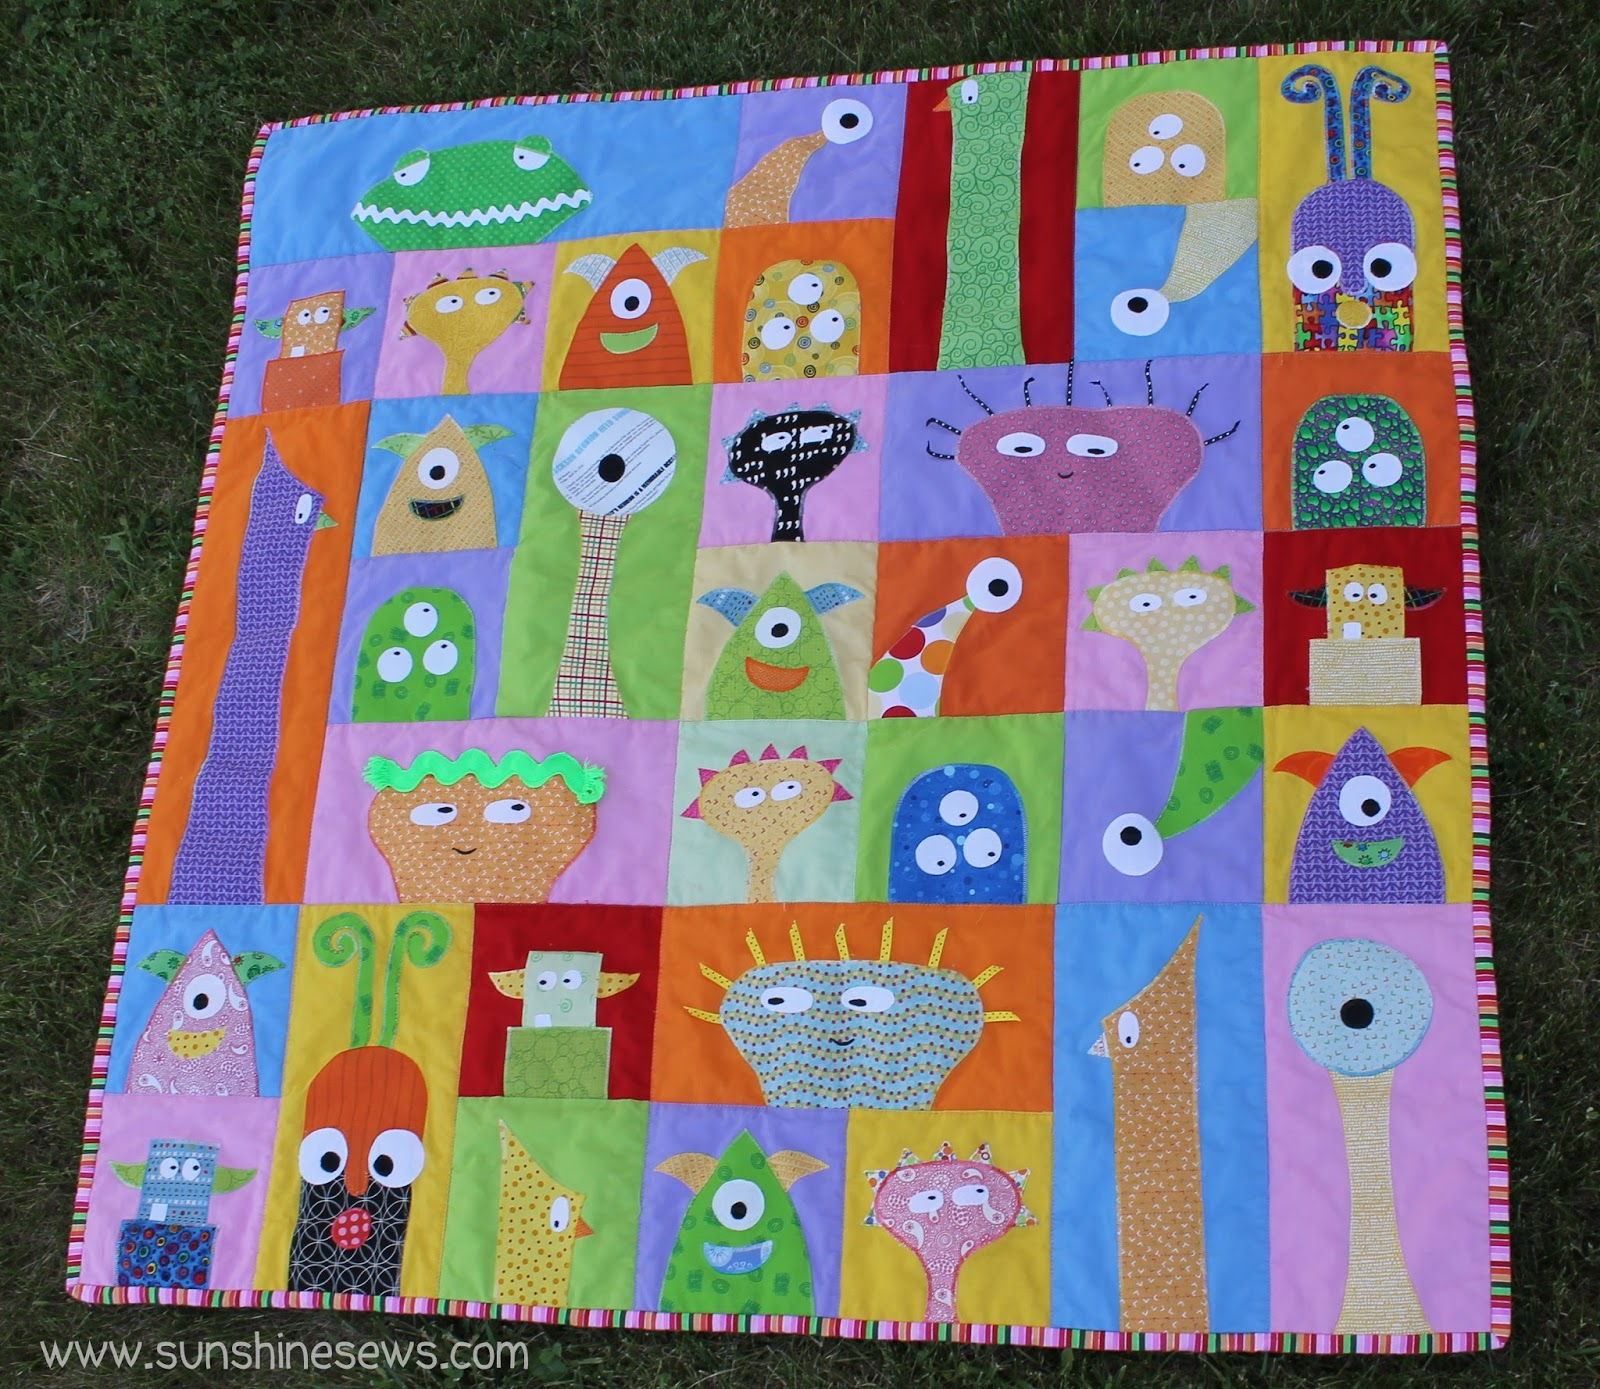 Sunshine Sews Little Monsters Quilt Completed